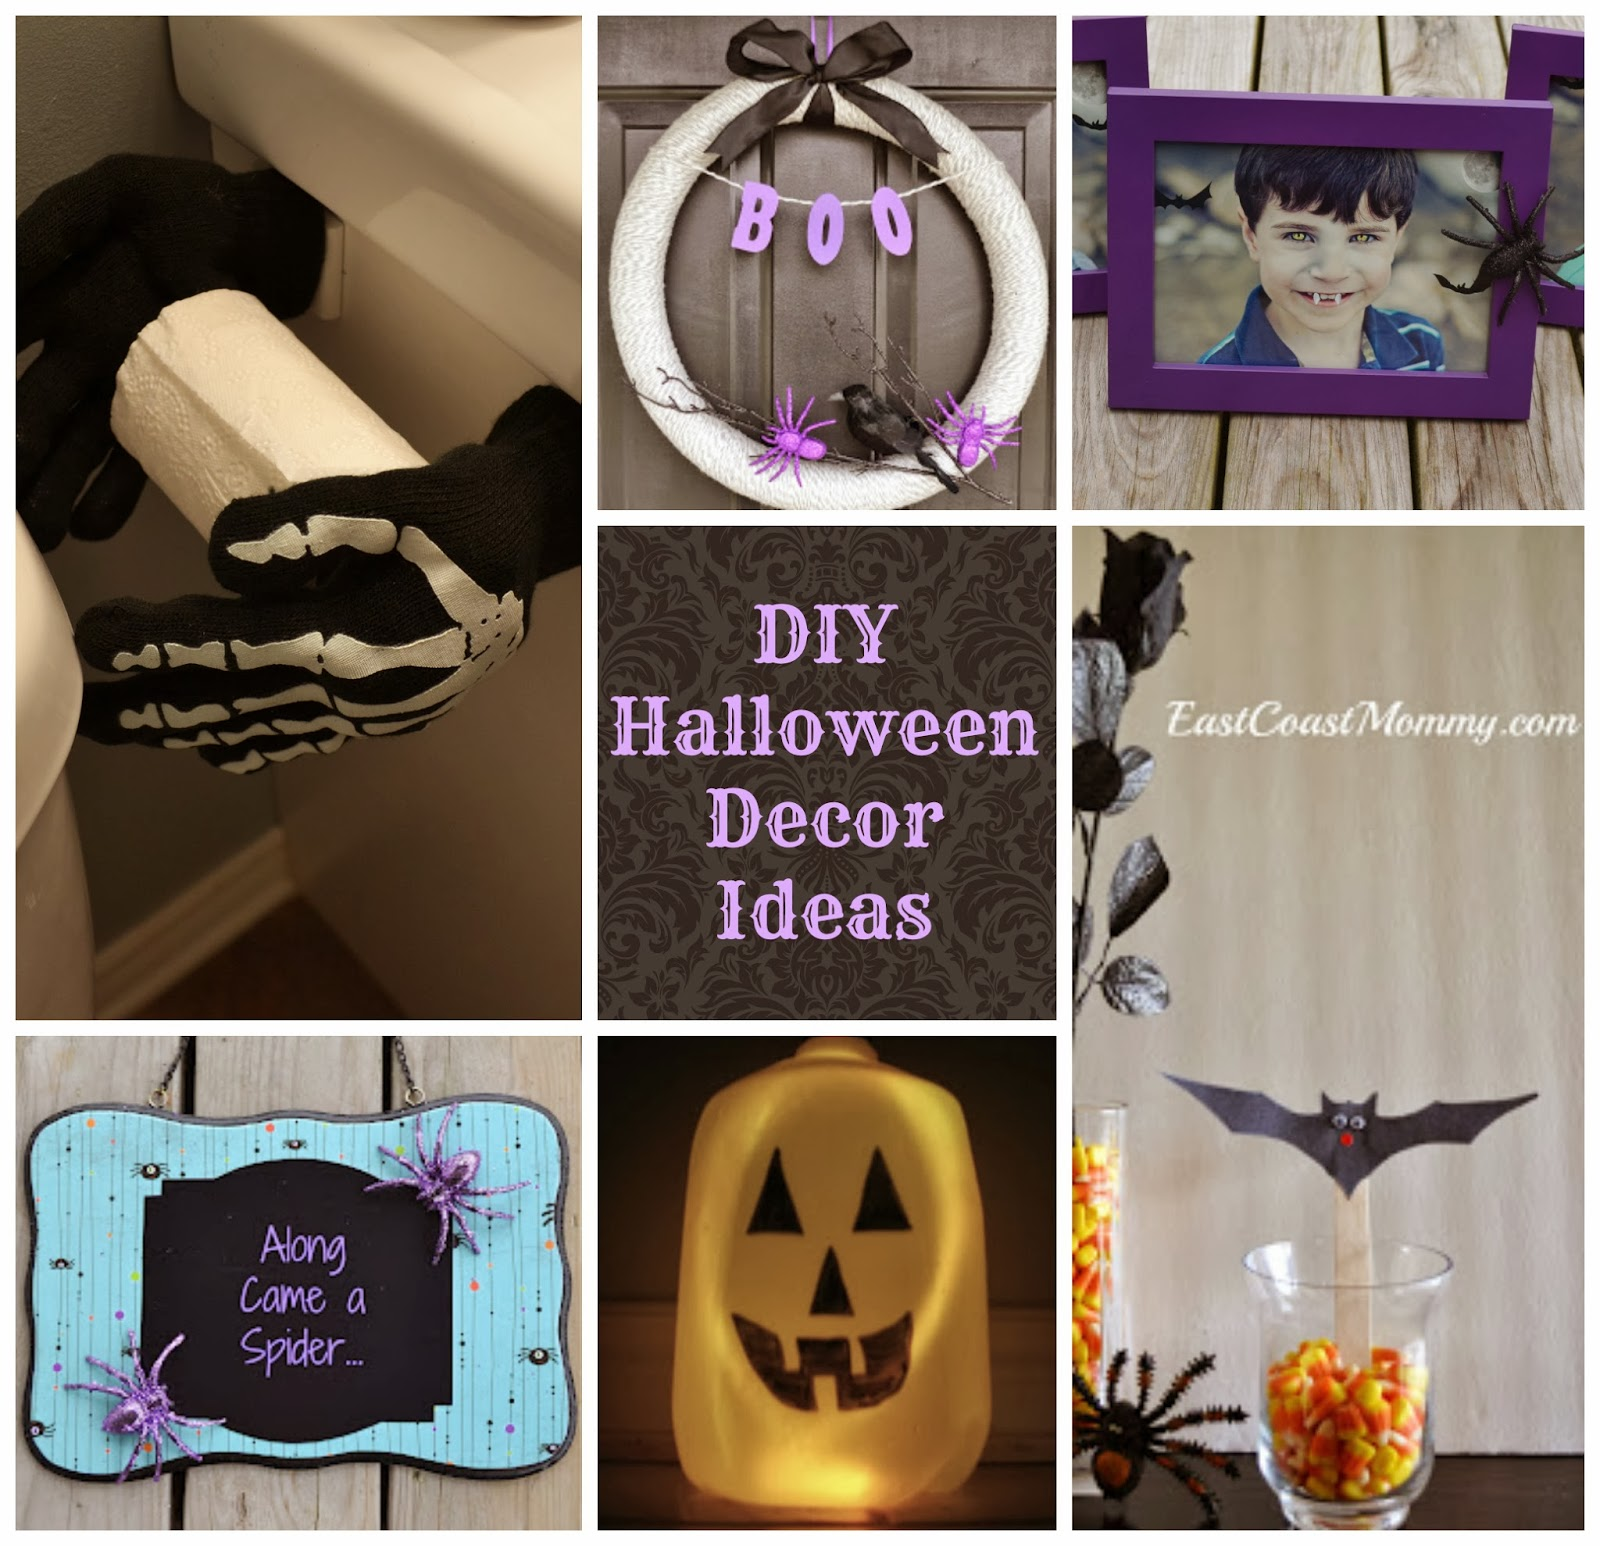 East Coast Mommy: 7 Fantastic DIY Halloween Decor Ideas - Diy Halloween